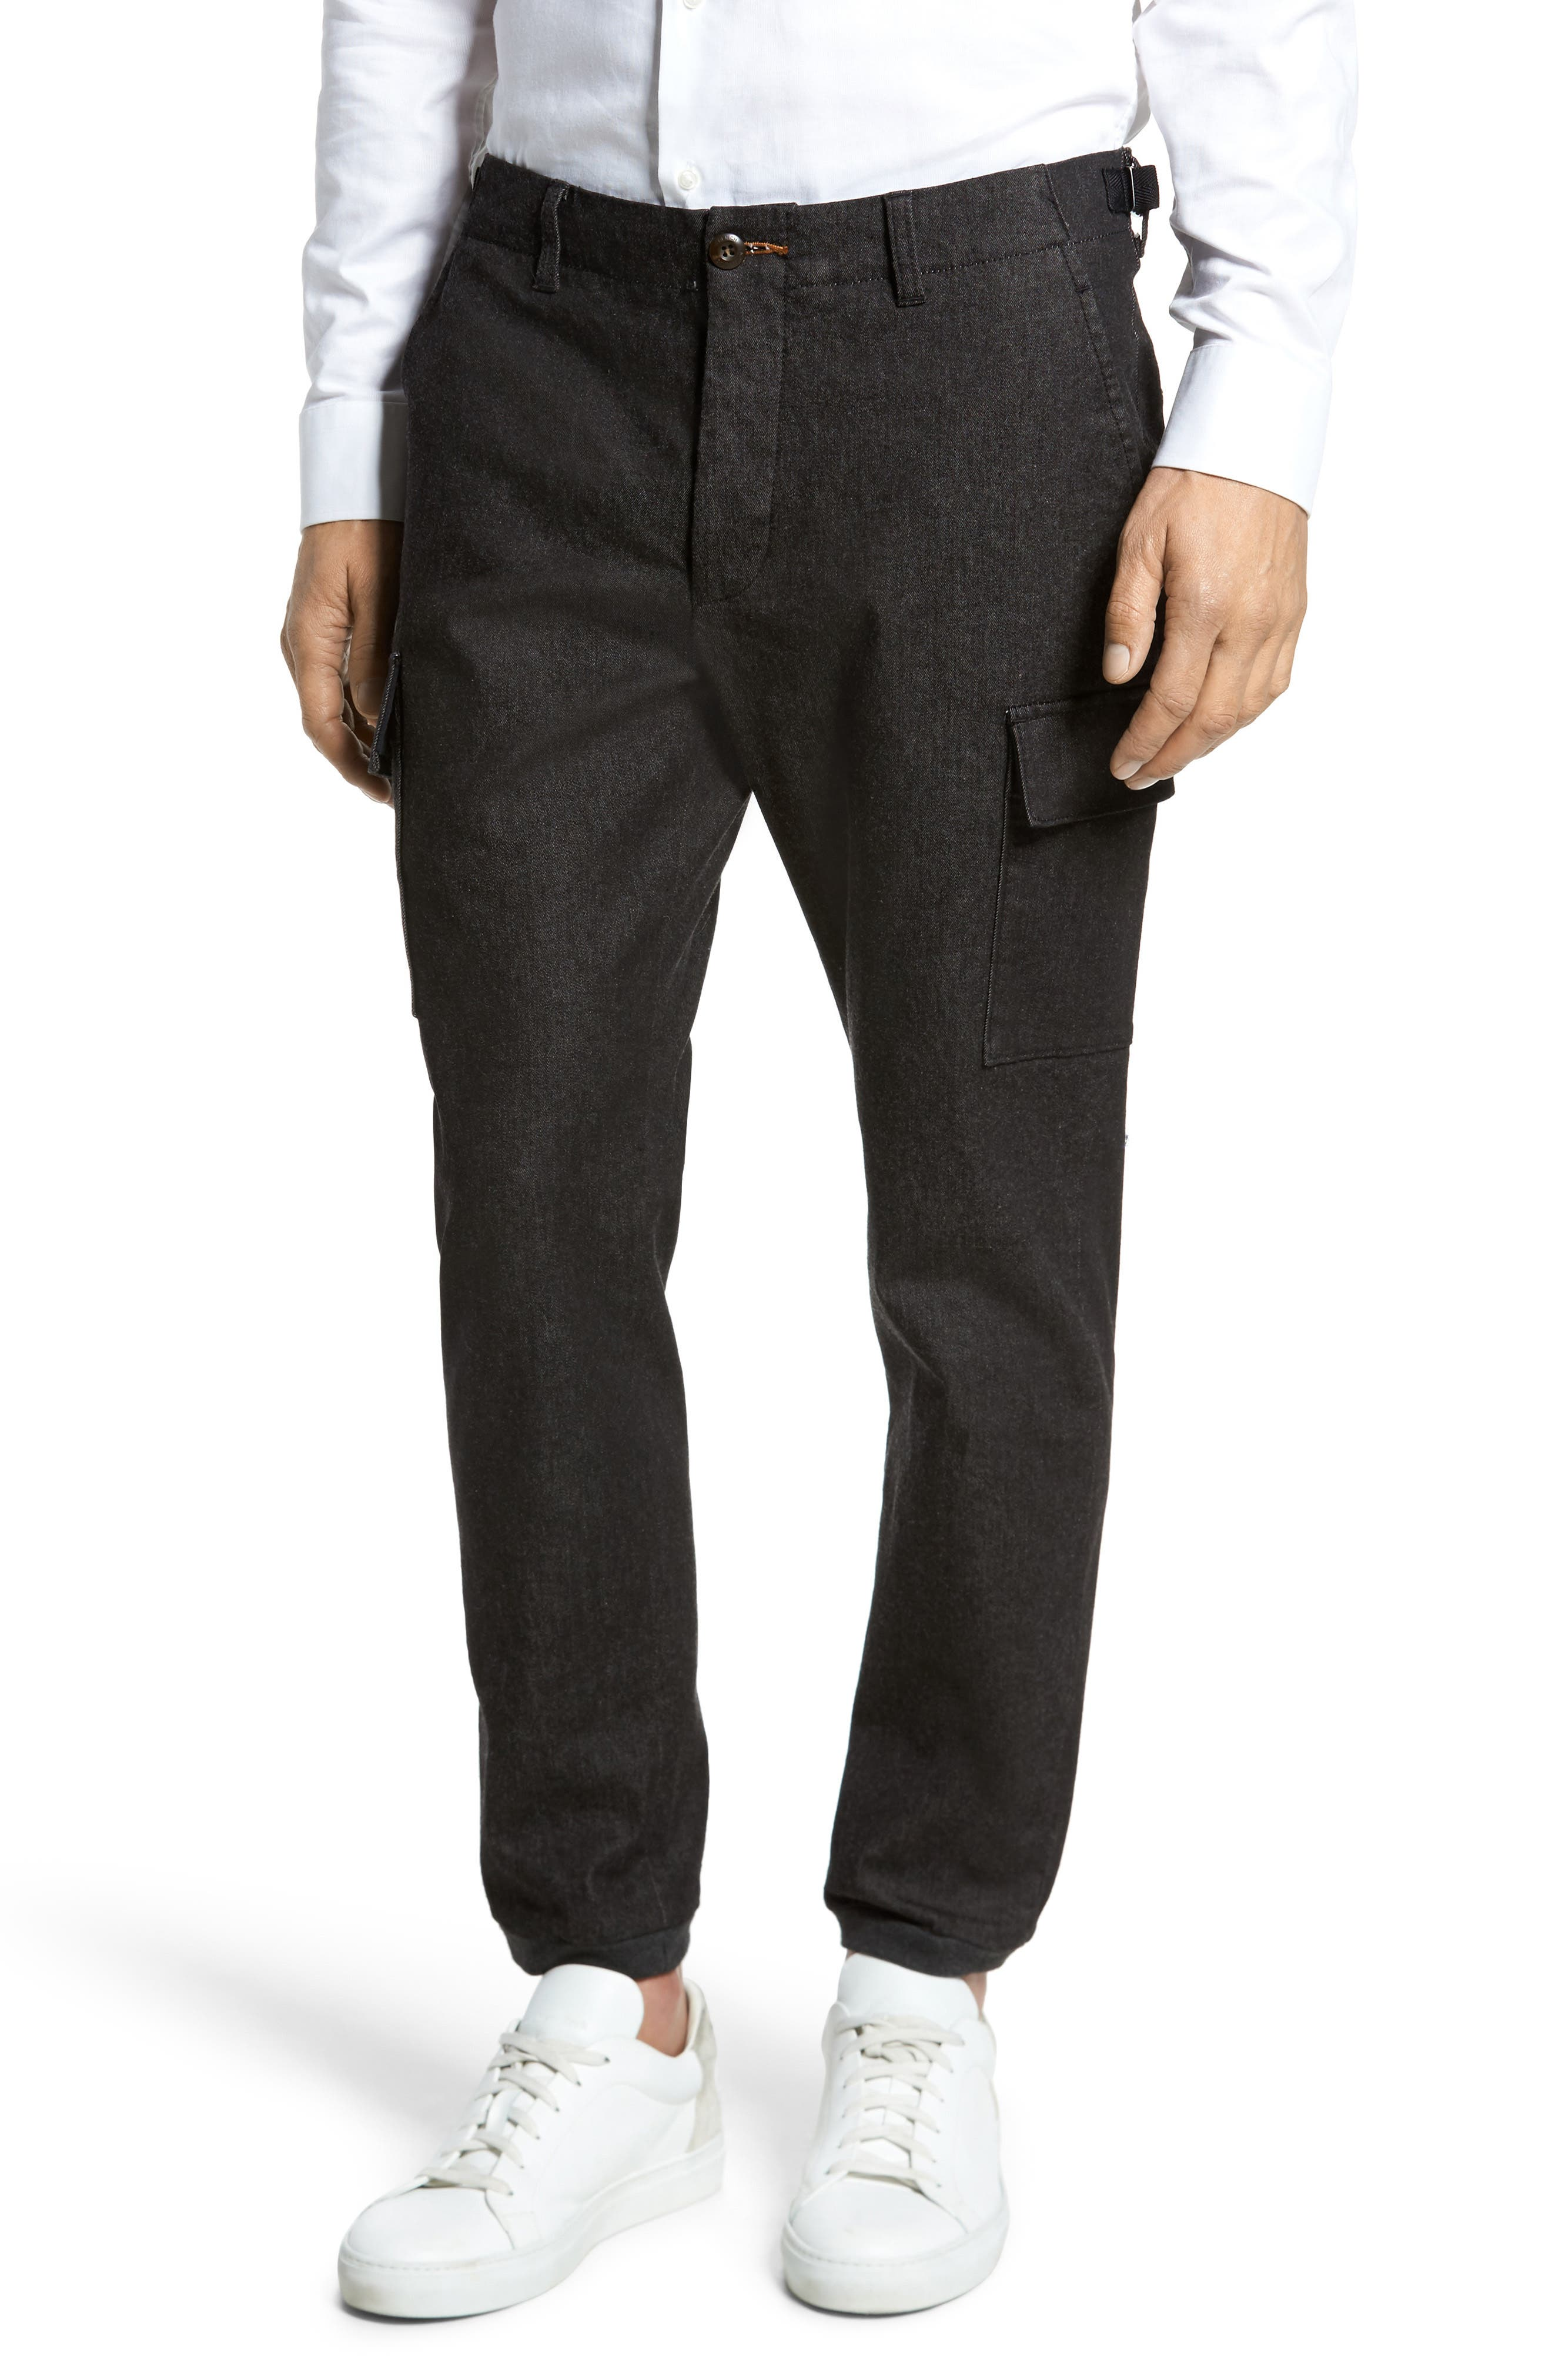 Brushed Stretch Twill Pants,                             Main thumbnail 1, color,                             Charcoal Mel